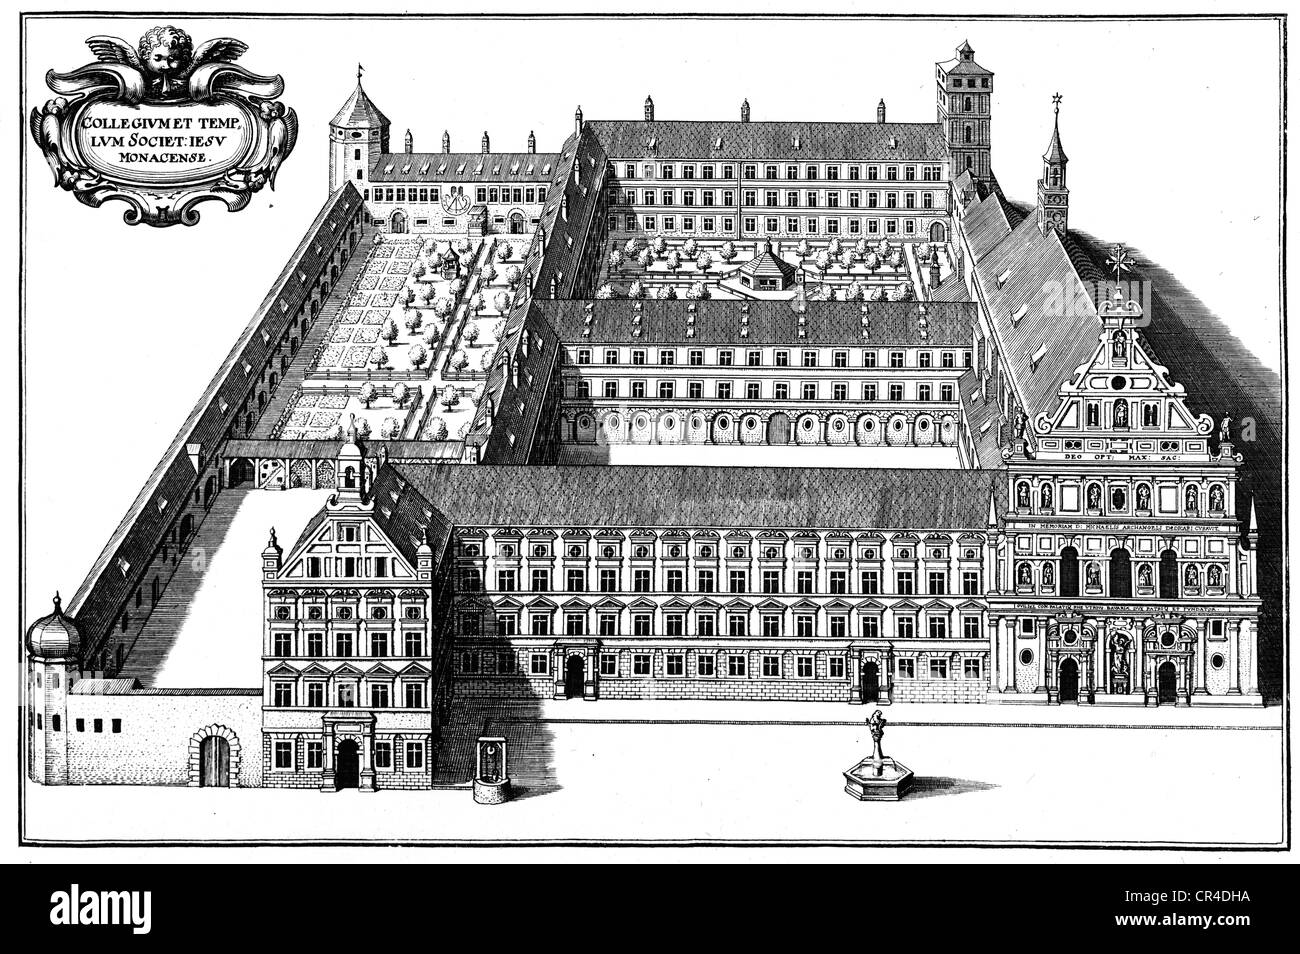 Convent of the Society of Jesus, about 1650, Munich, copper engraving by Matthaeus Merian, Bavaria, Germany, Europe - Stock Image